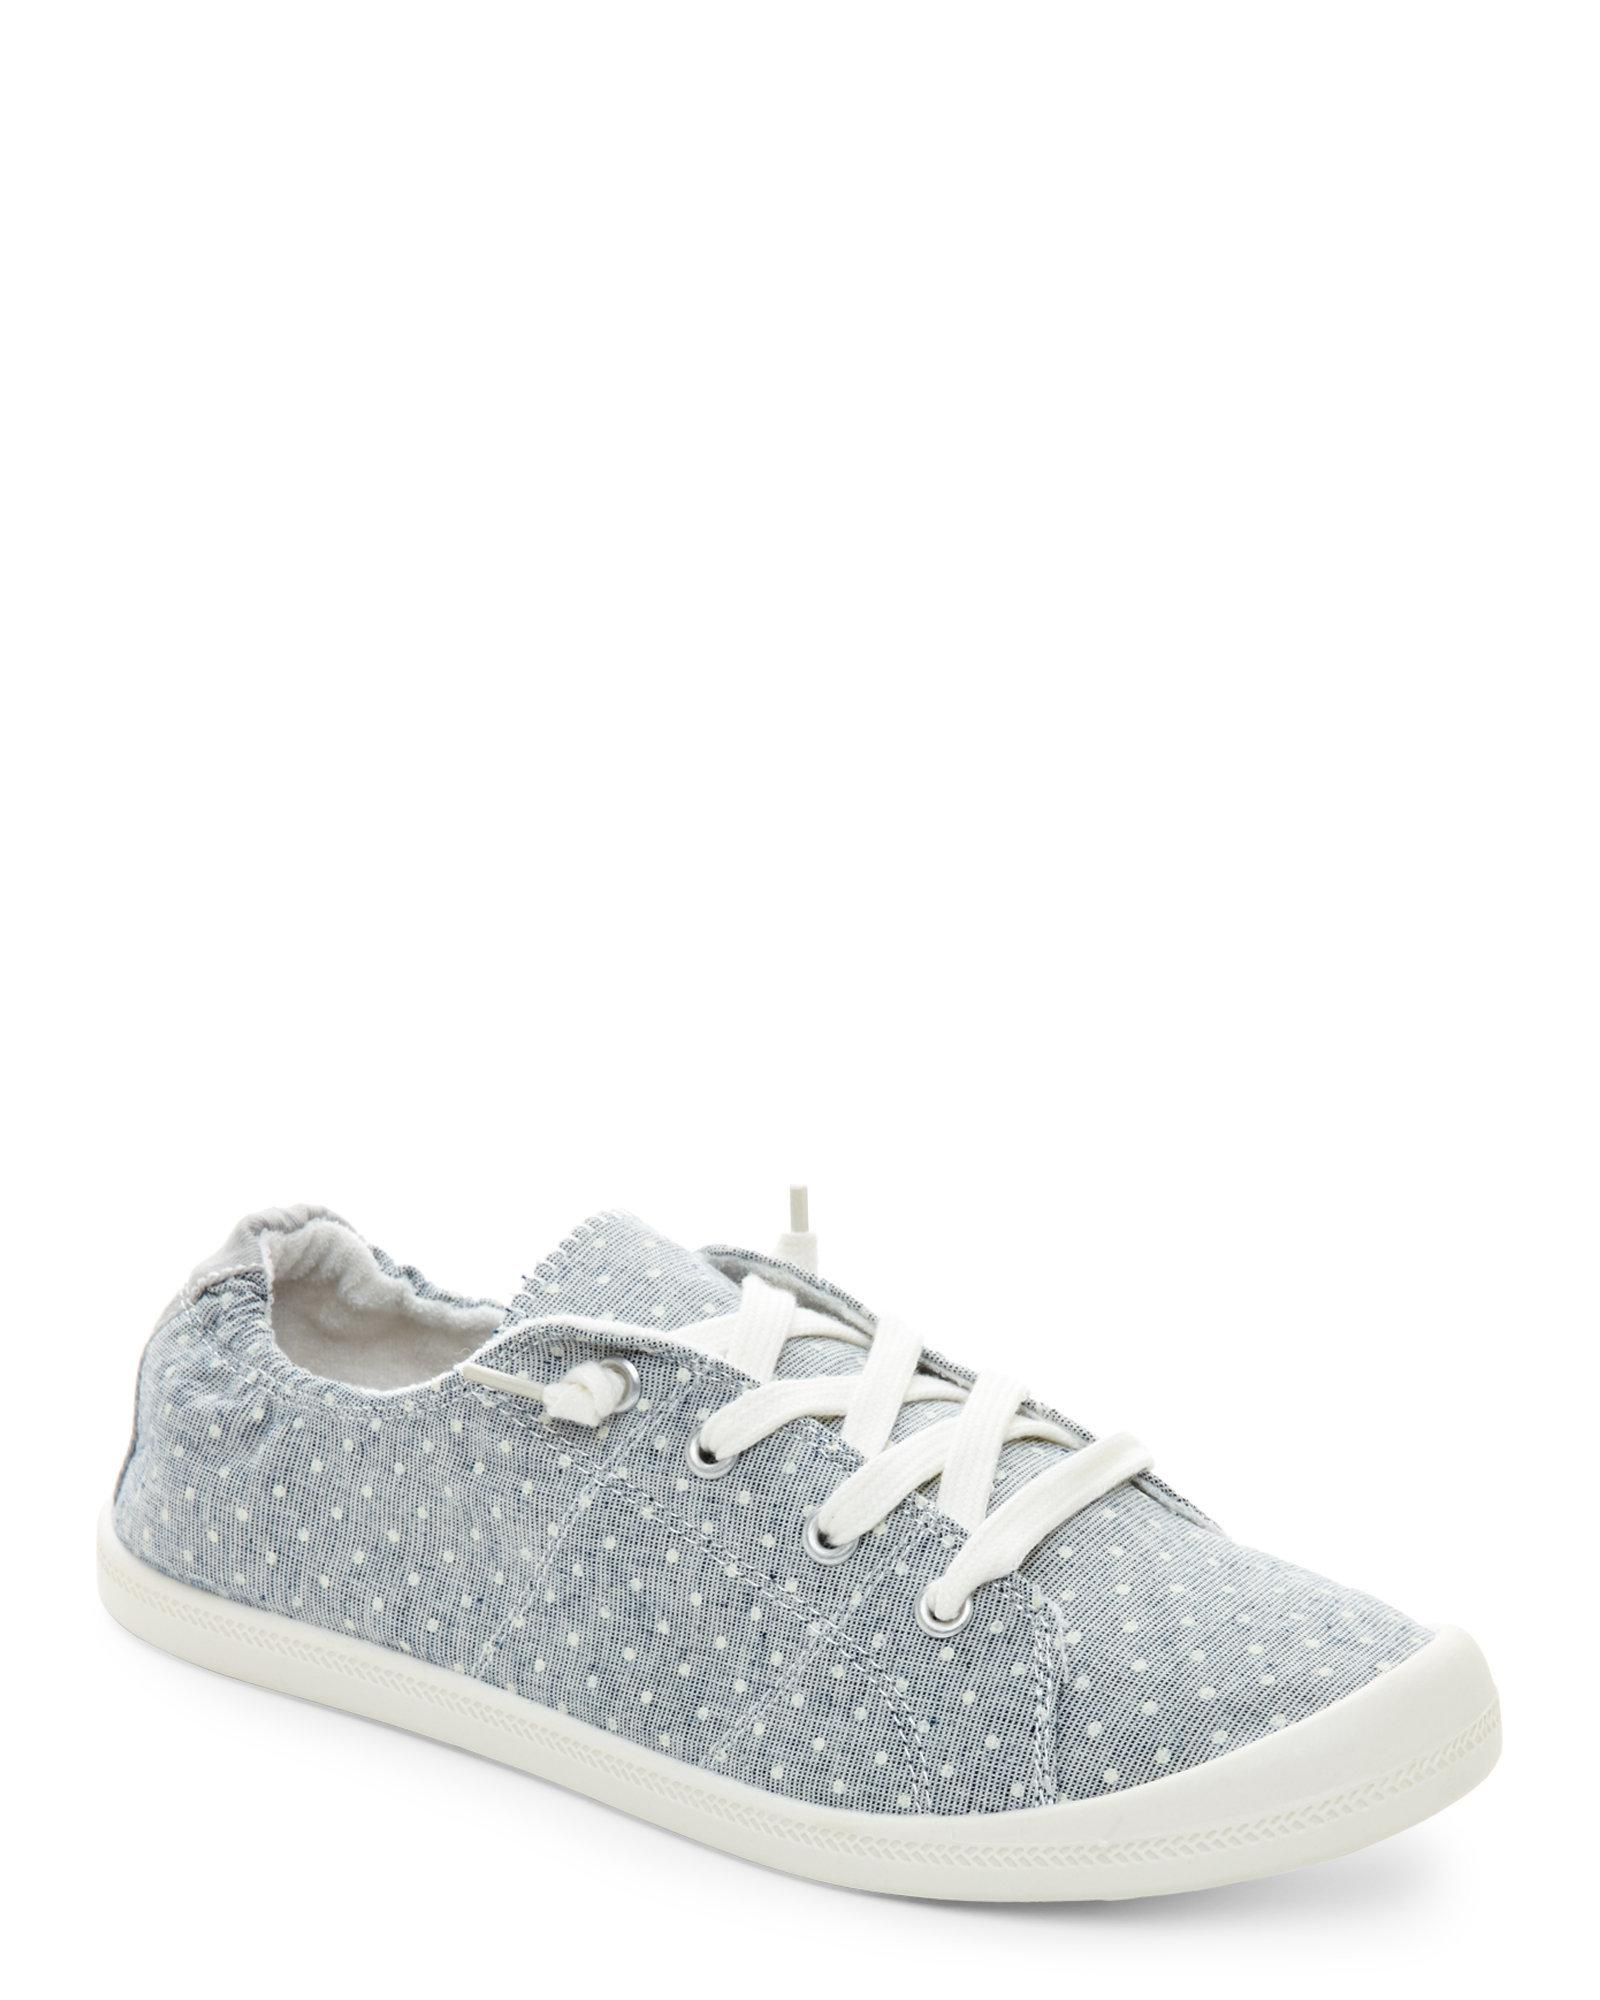 5a890aed0eb Lyst - Madden Girl Grey Bailey Slip On Sneakers in Gray